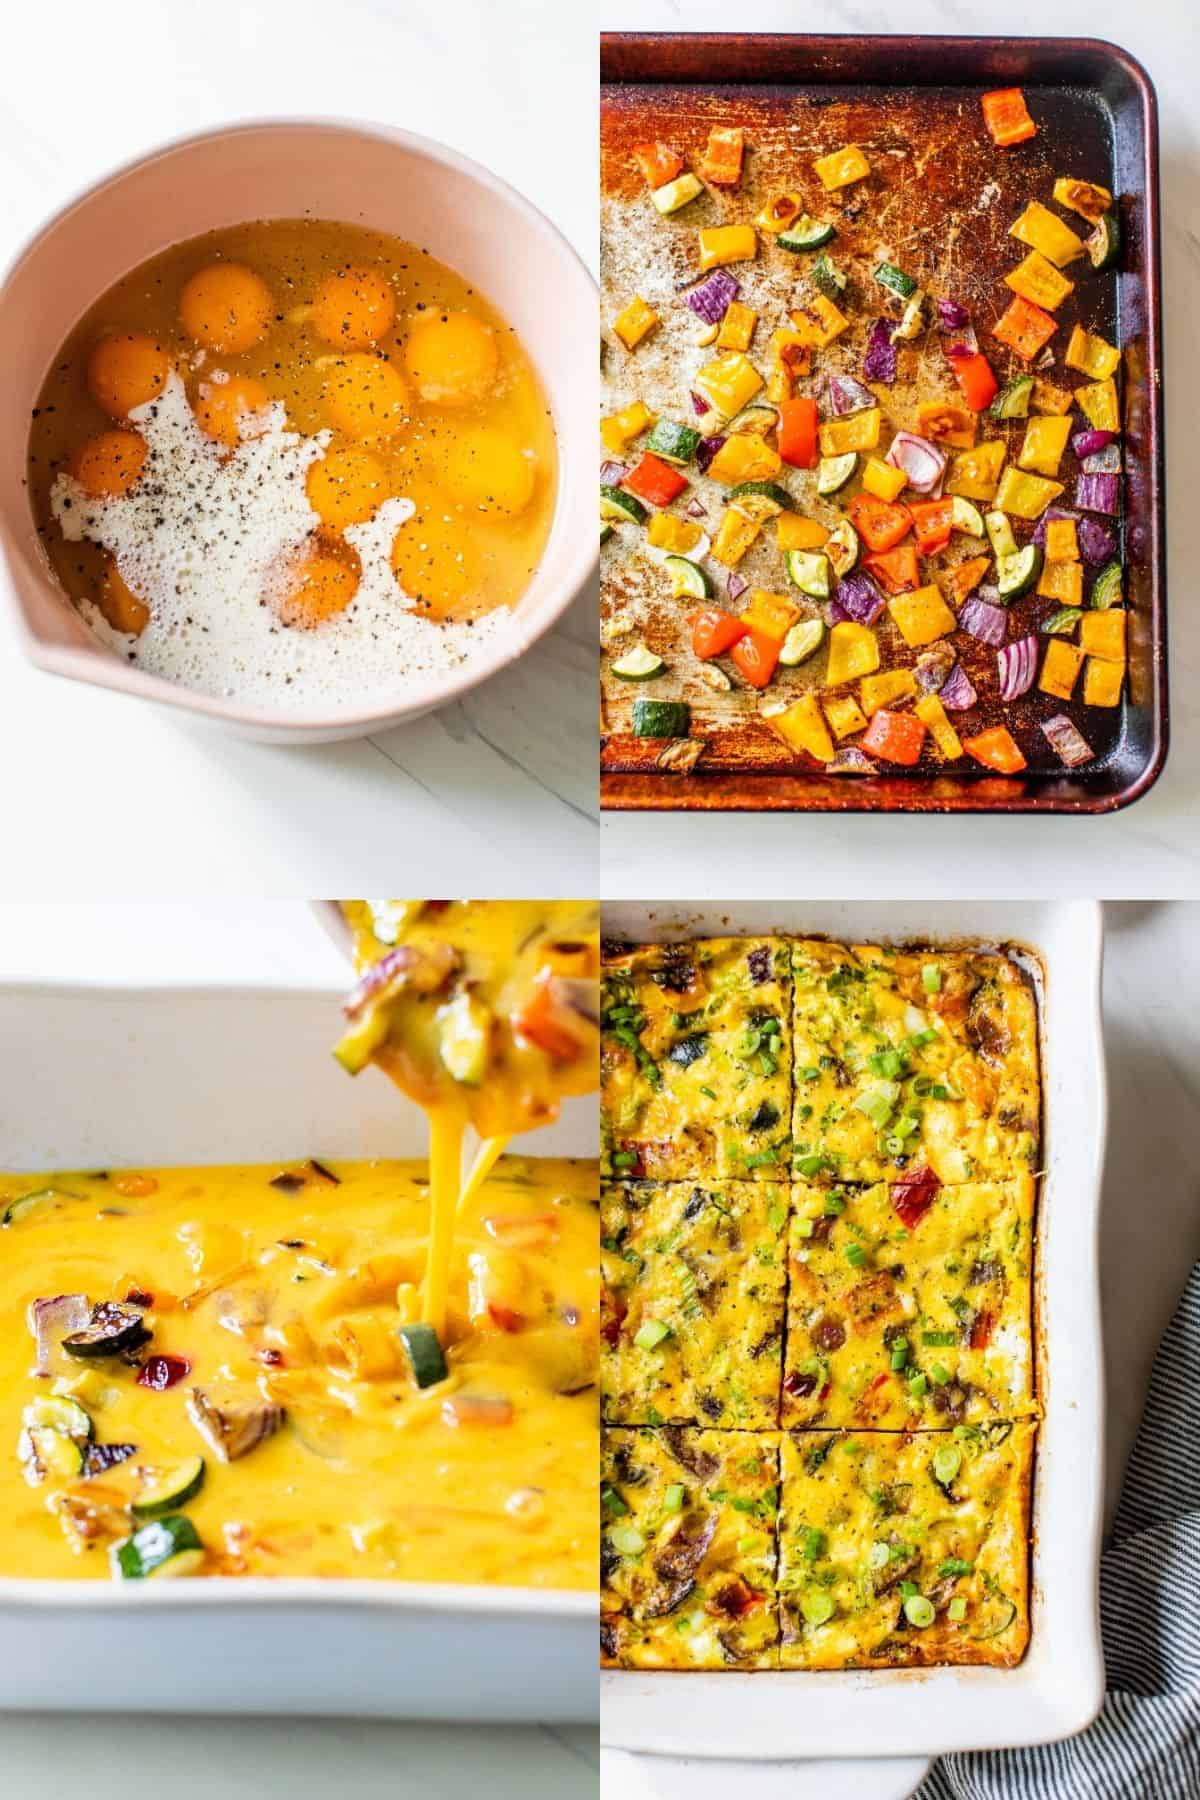 mixing eggs with veggies to make a vegetable frittata